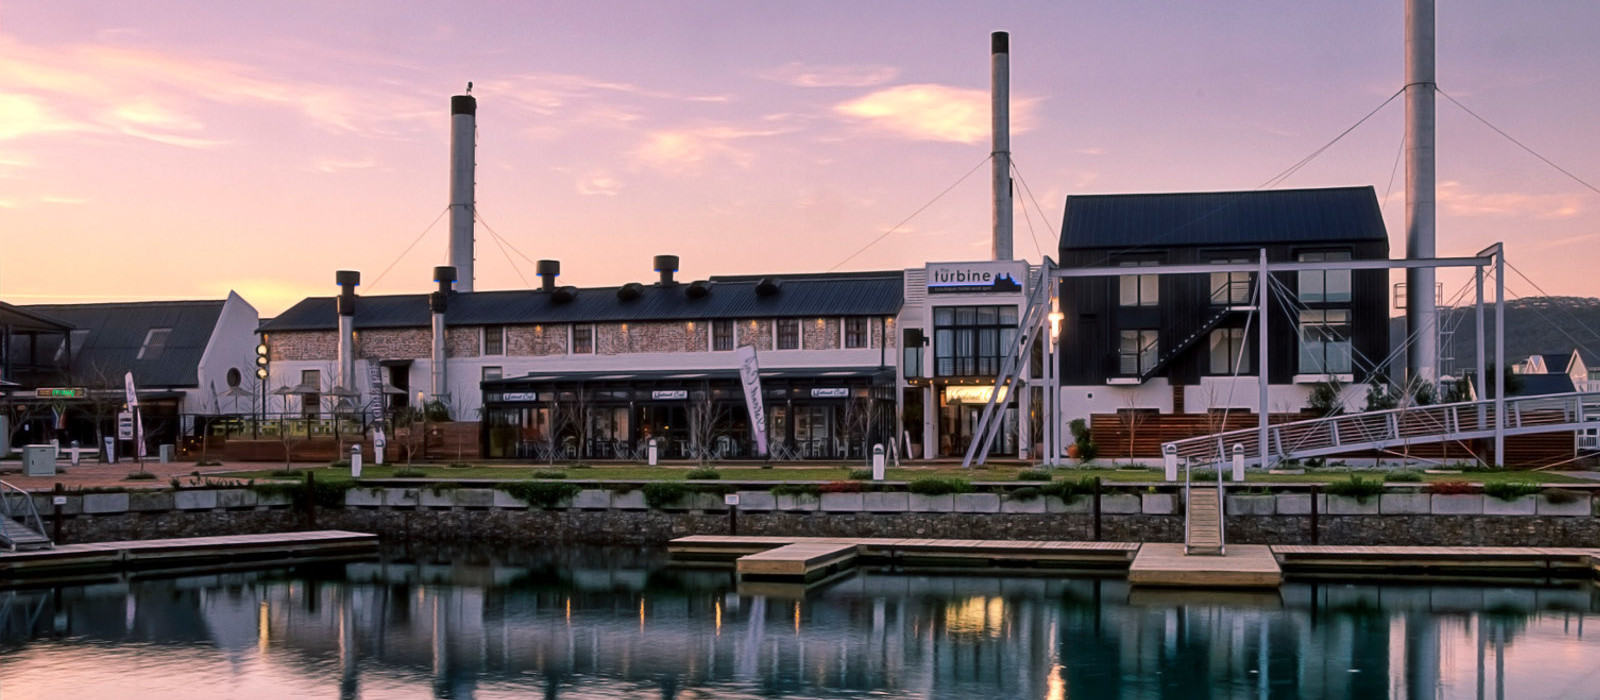 Hotel The Turbine Boutique  & Spa South Africa